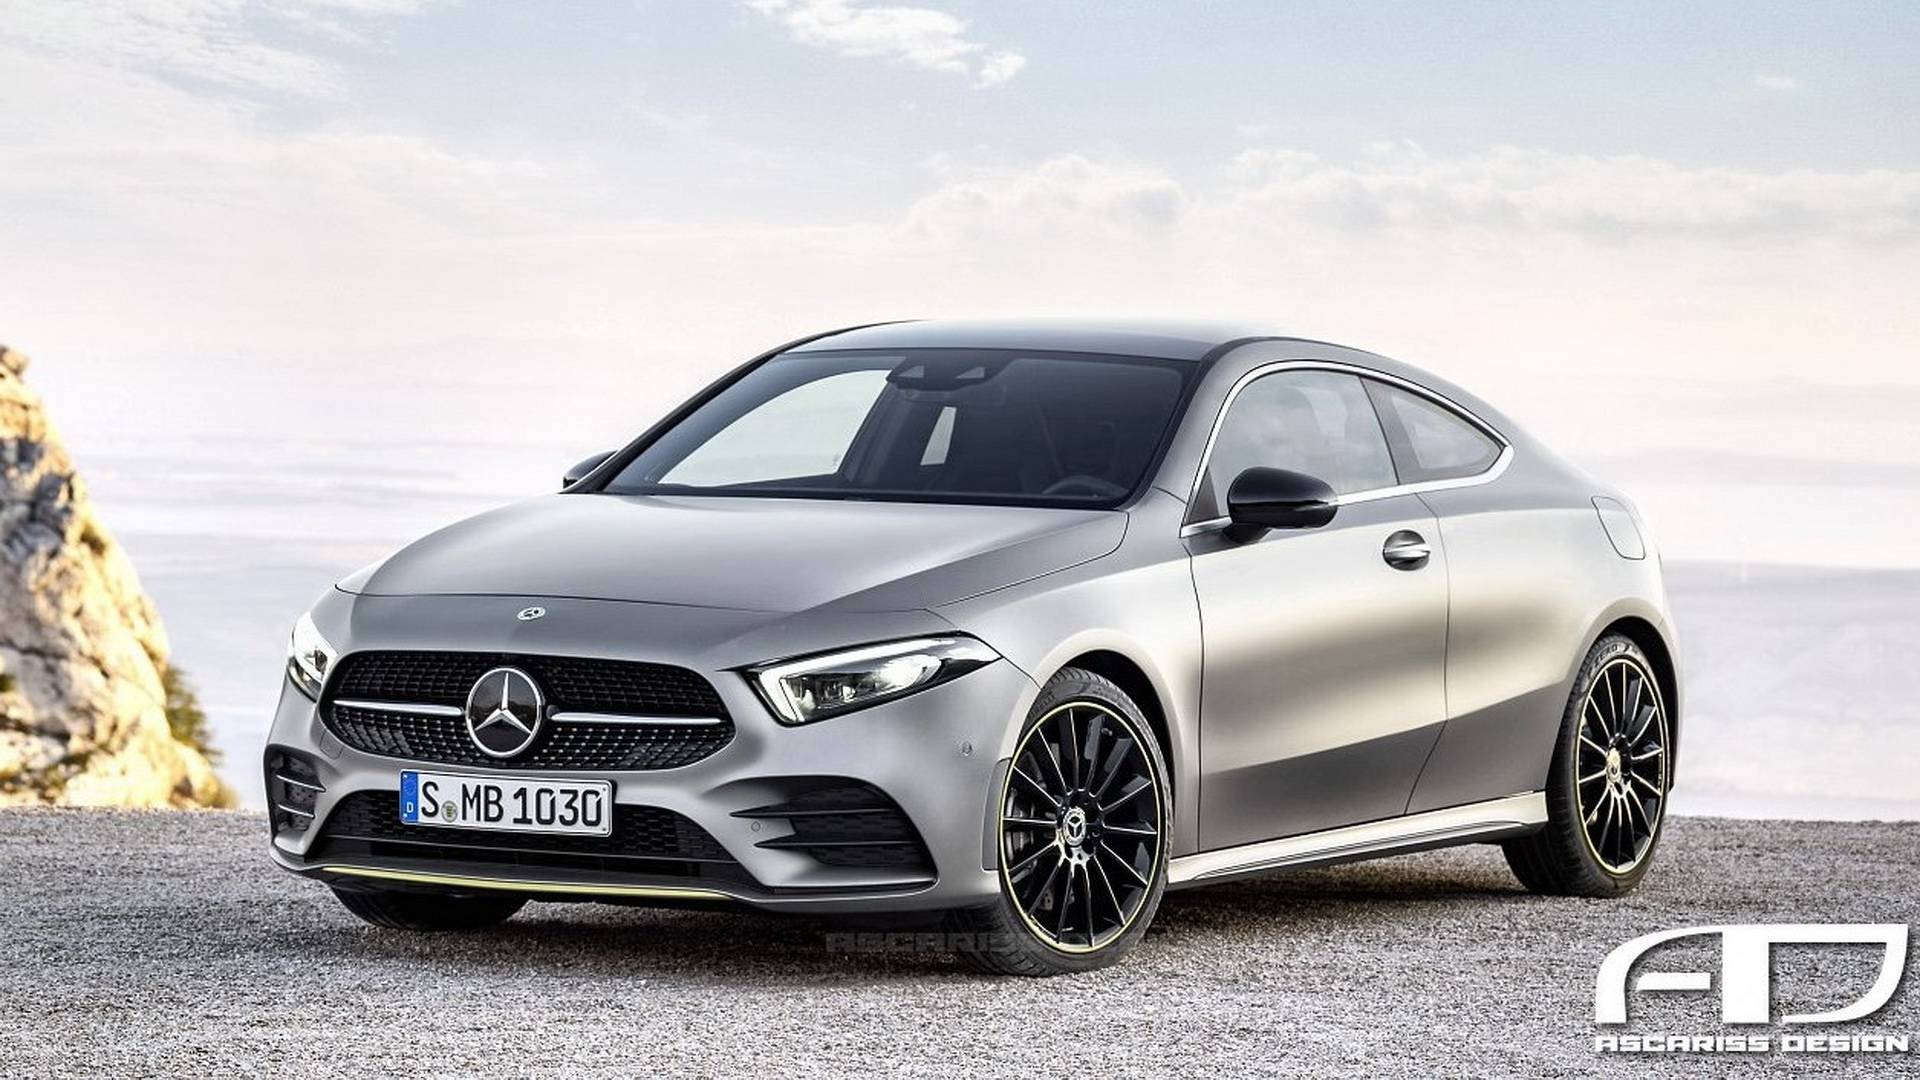 2019 Mercedes A Class Coupe And Hot A45 Hatchback Rendered